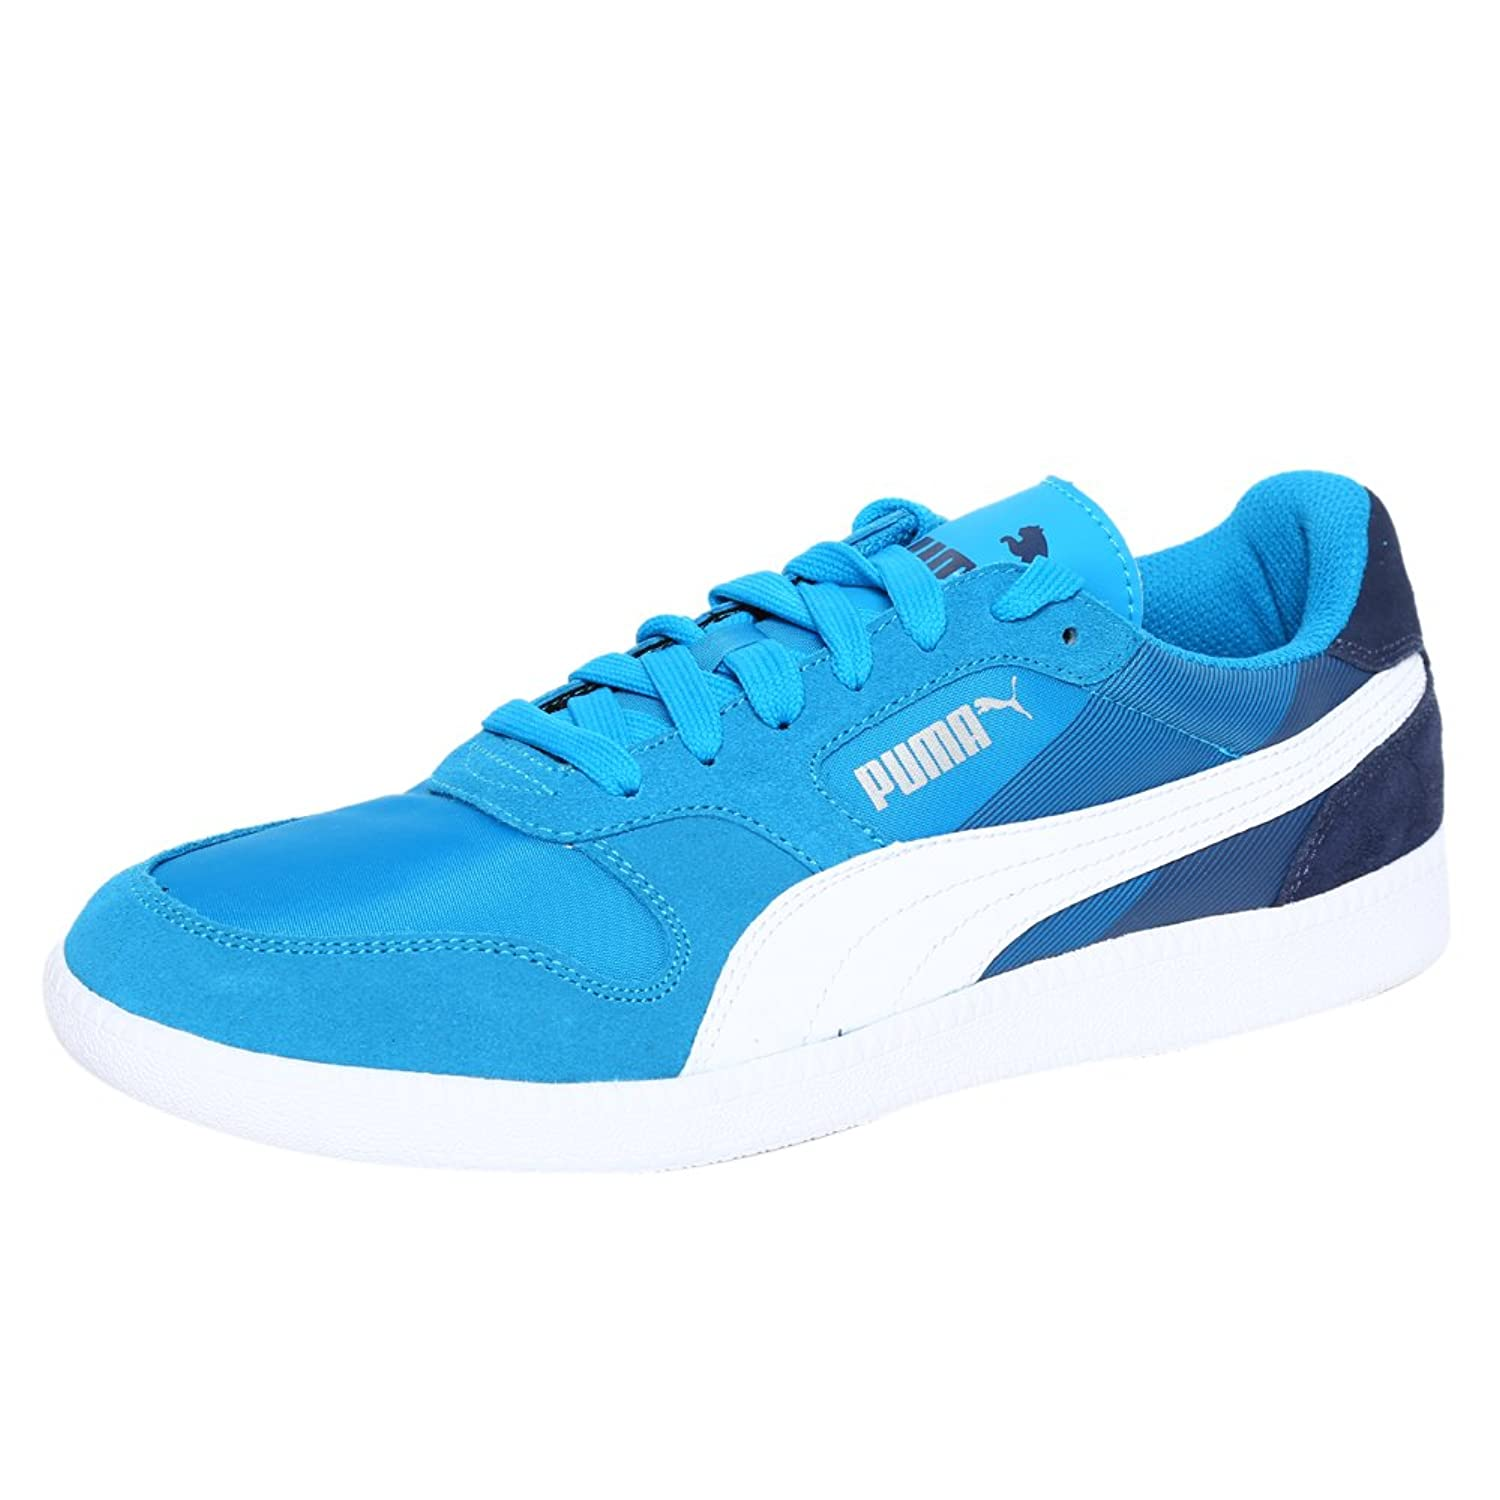 puma icra trainer sd blue sneakers